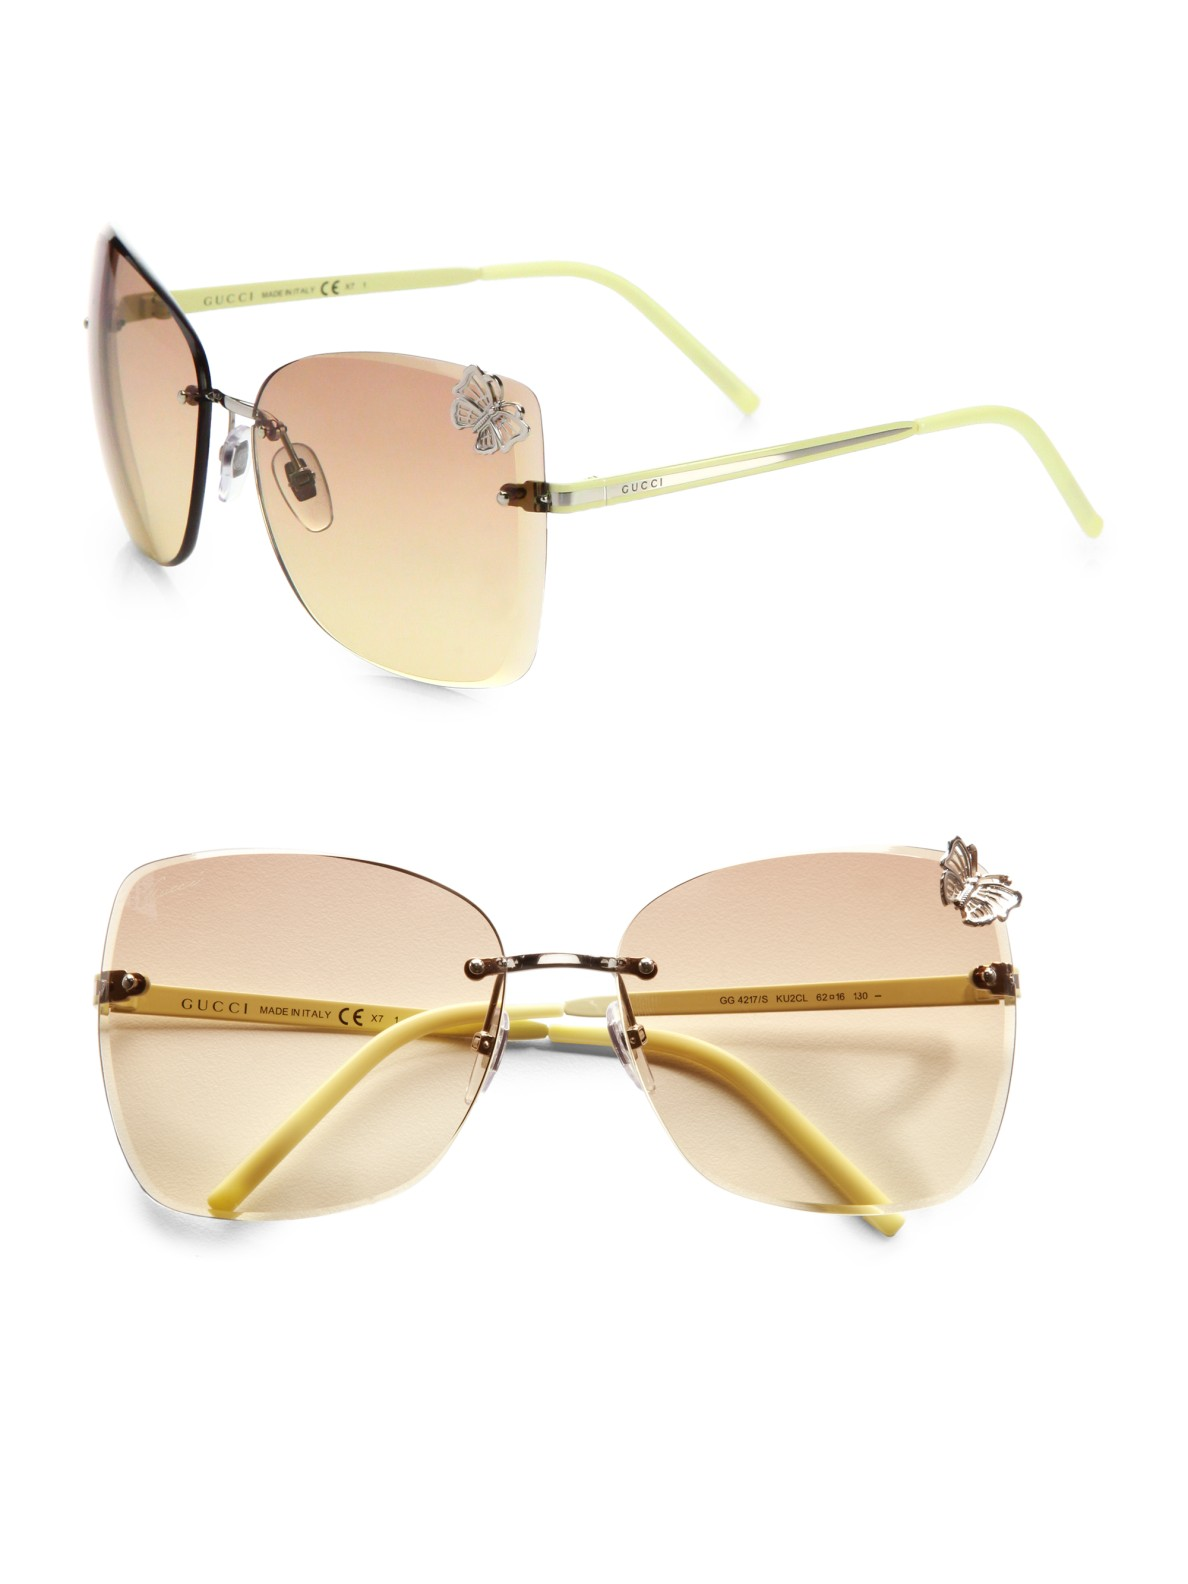 Rimless Butterfly Glasses : Gucci Rimless Butterfly Sunglasses in Metallic Lyst